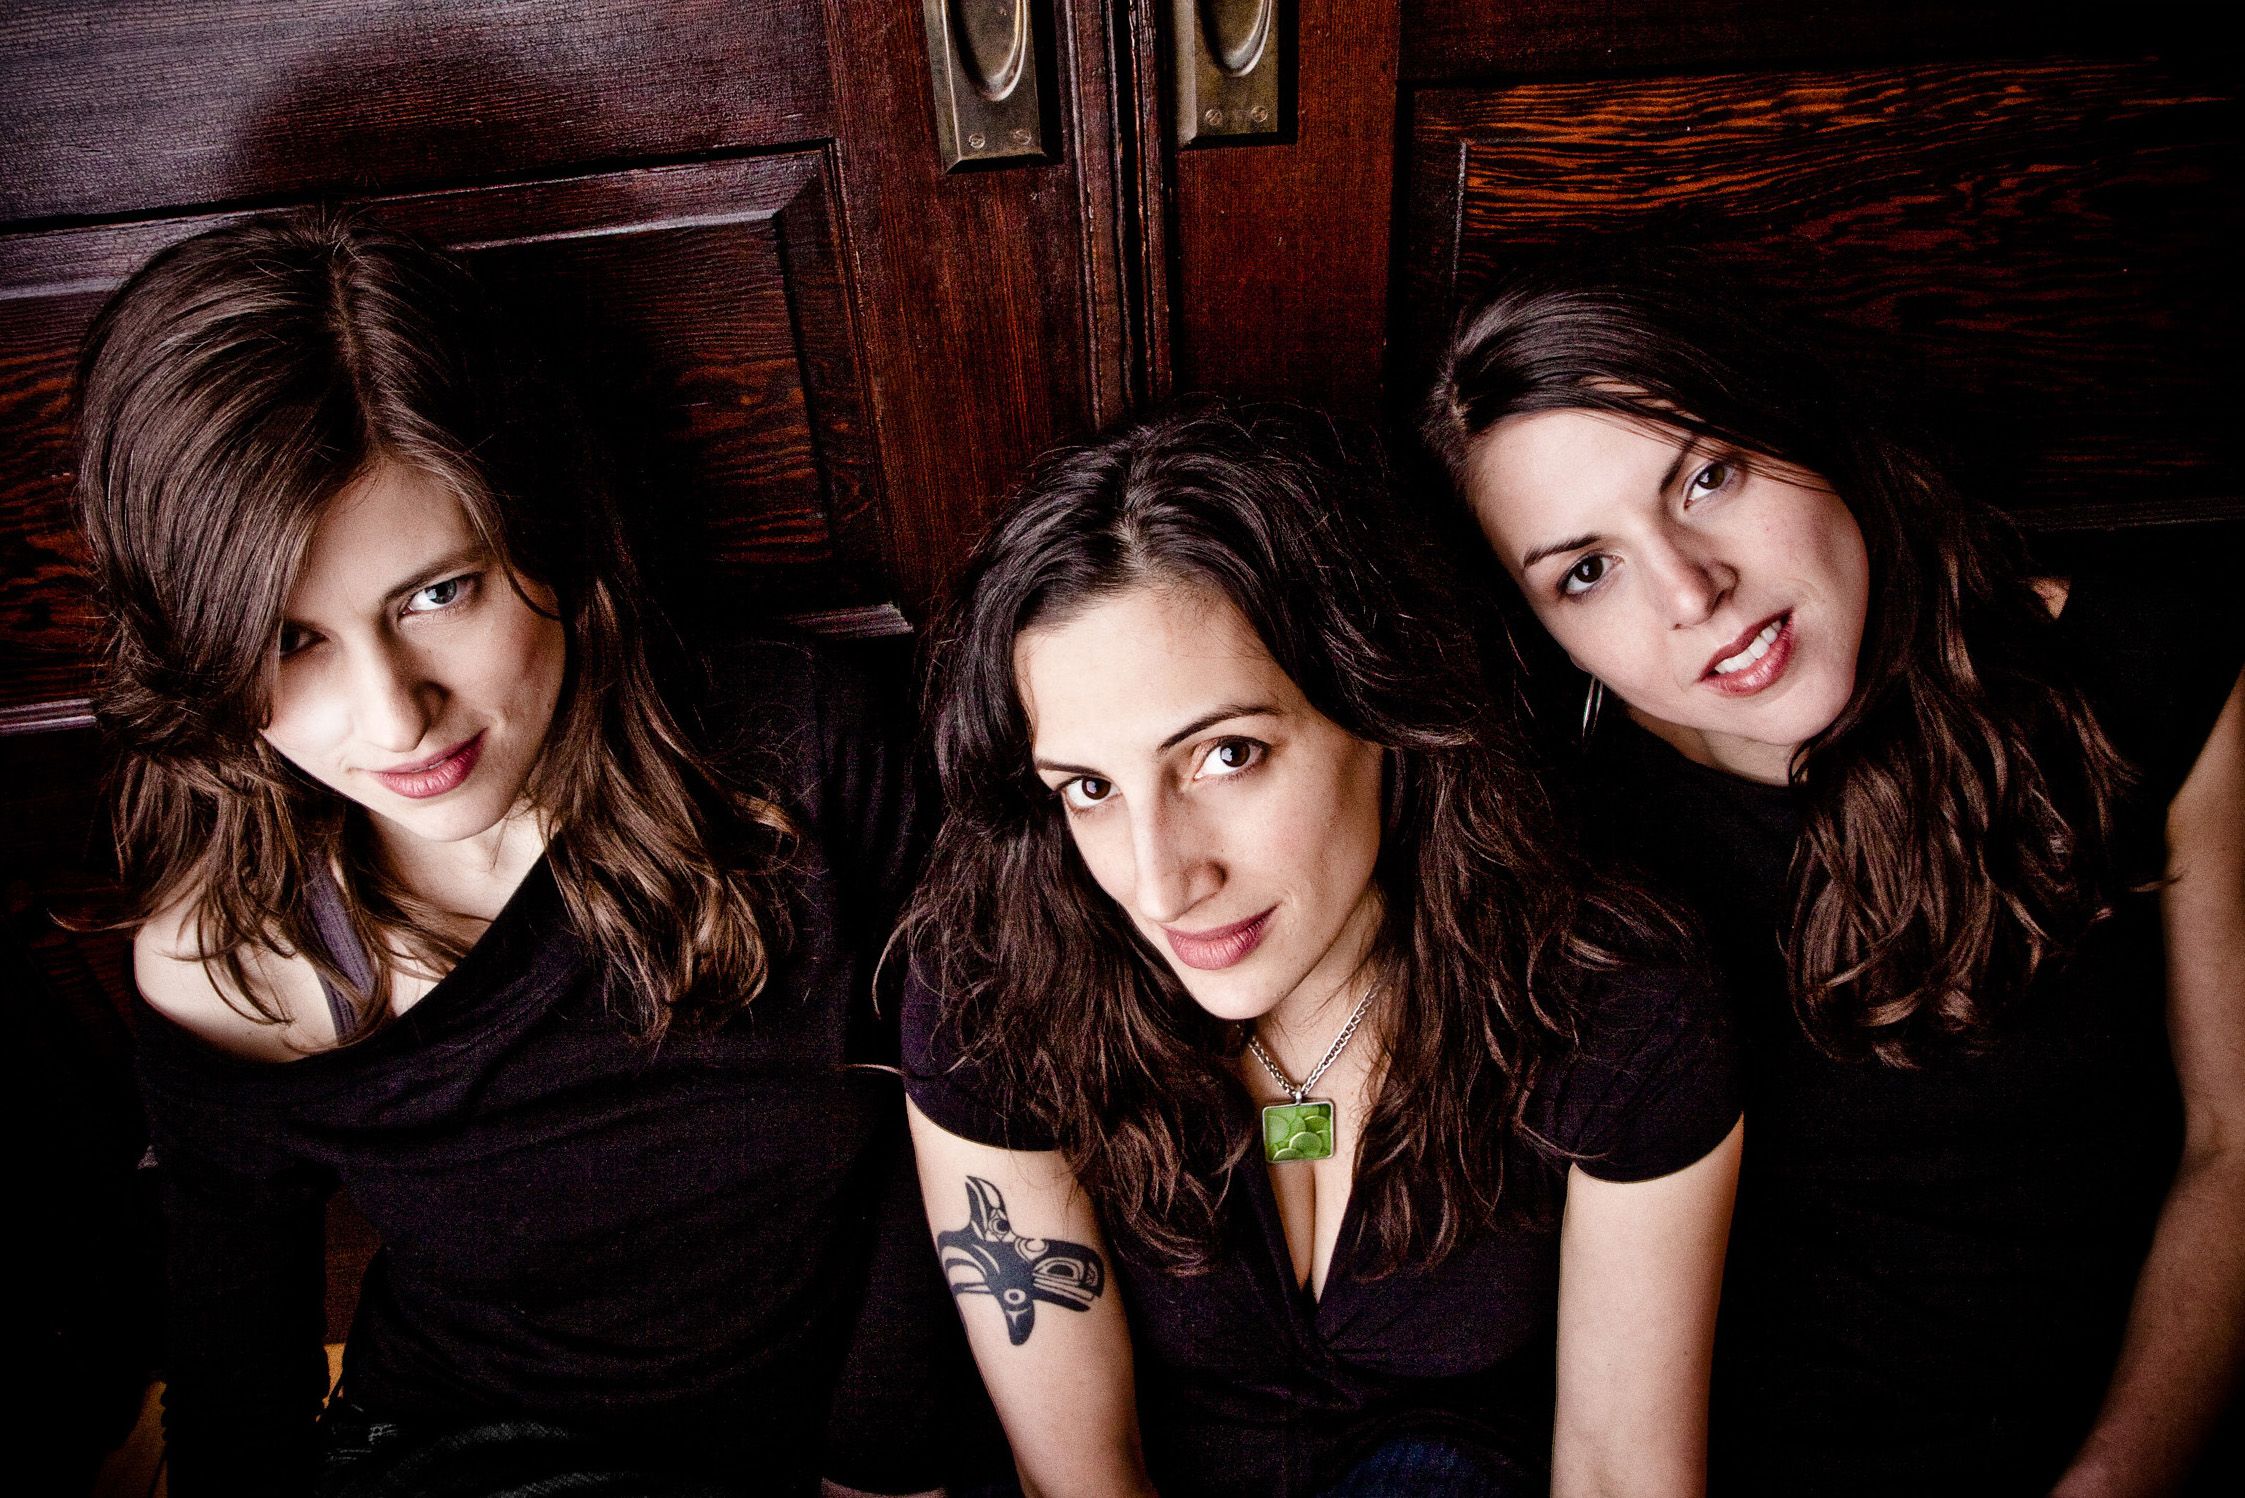 Covering Milestones: A Conversation with the Wailin' Jennys